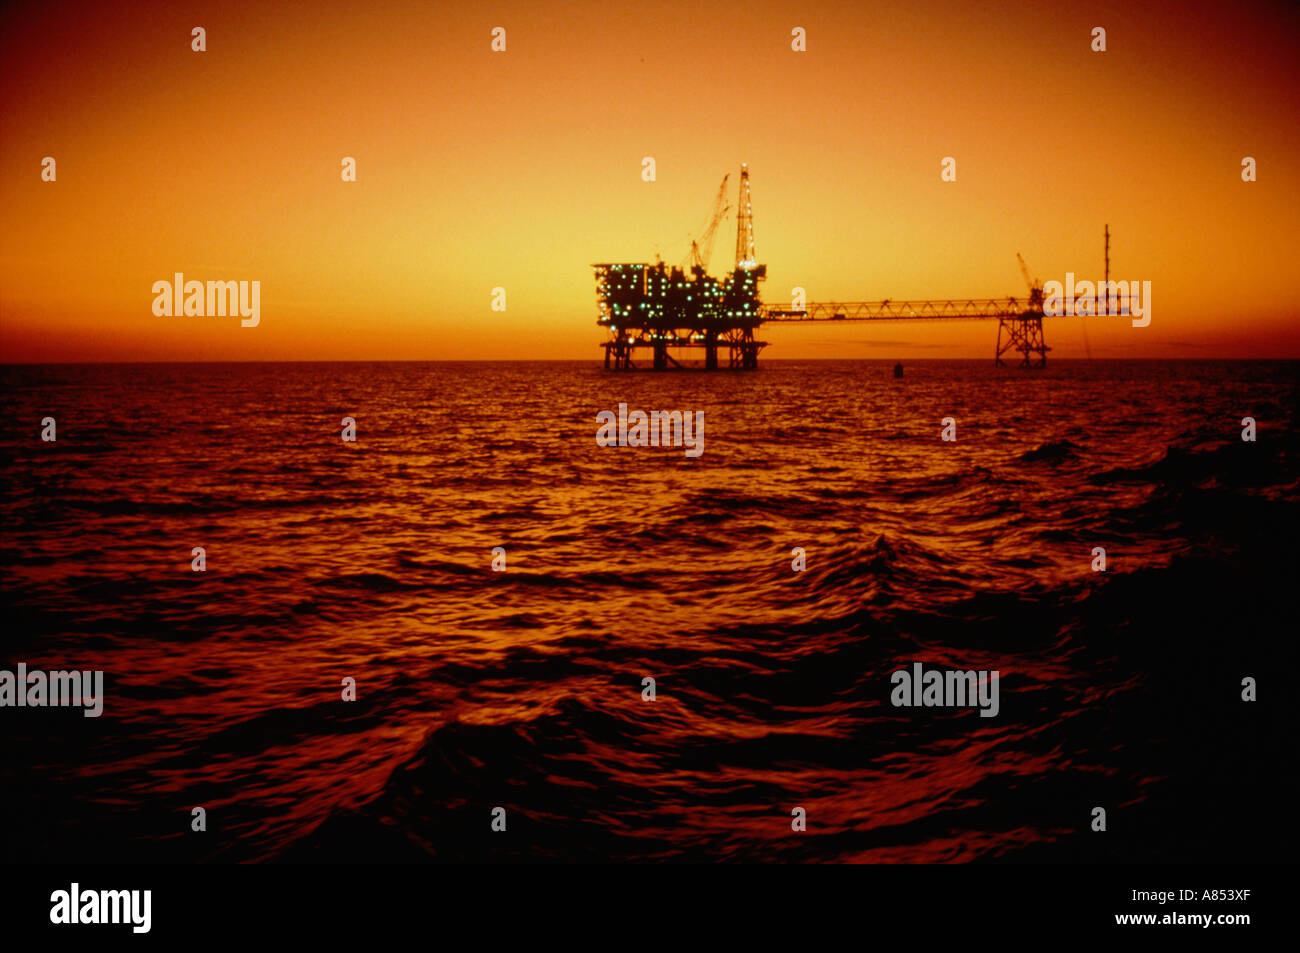 North Rankin A offshore oil rig in ocean sunset. Australia. - Stock Image